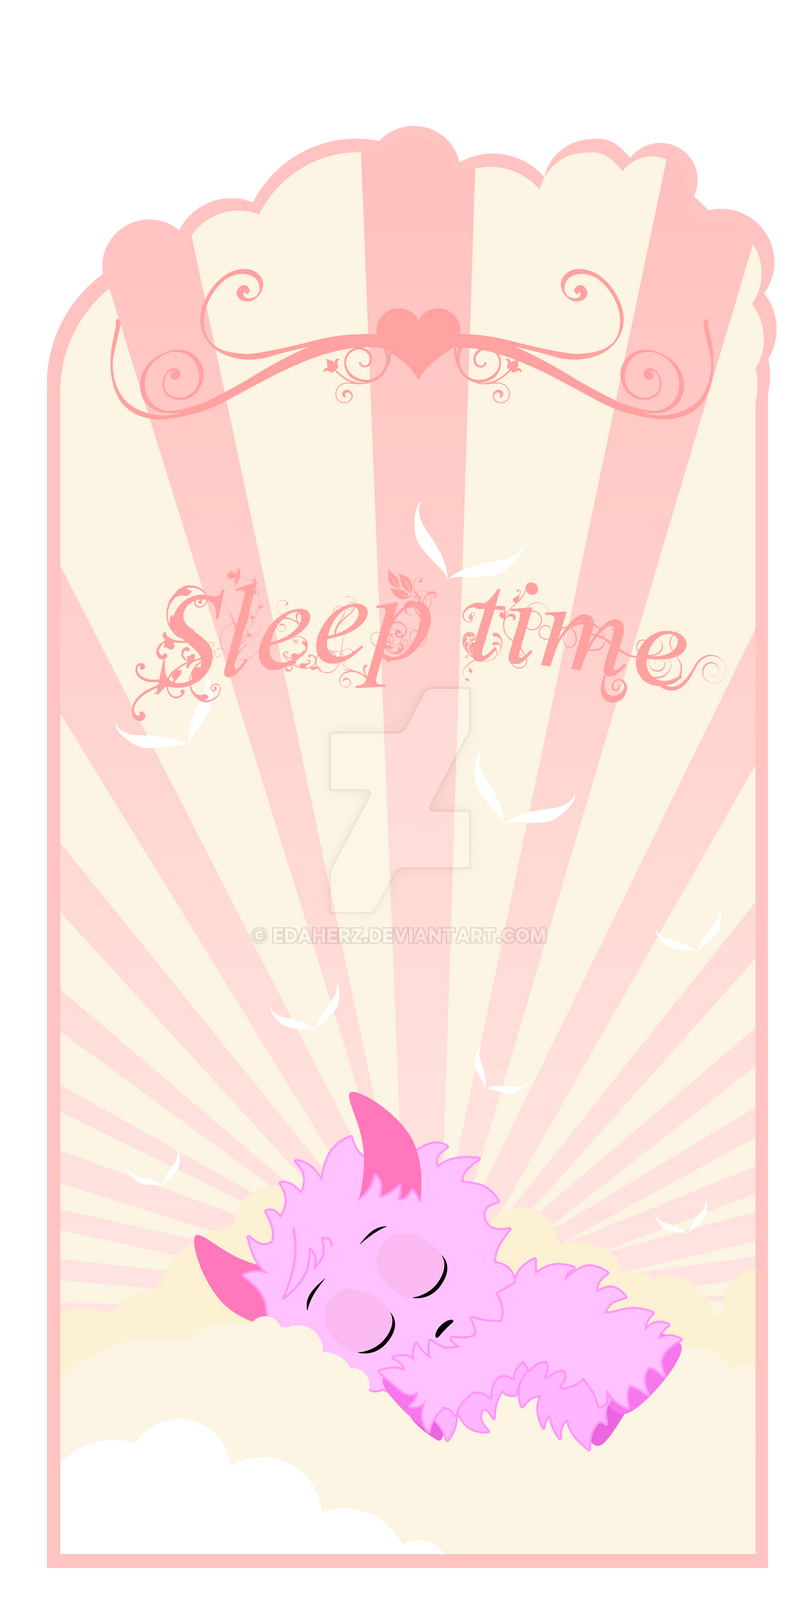 Sleep time by EdaHerz